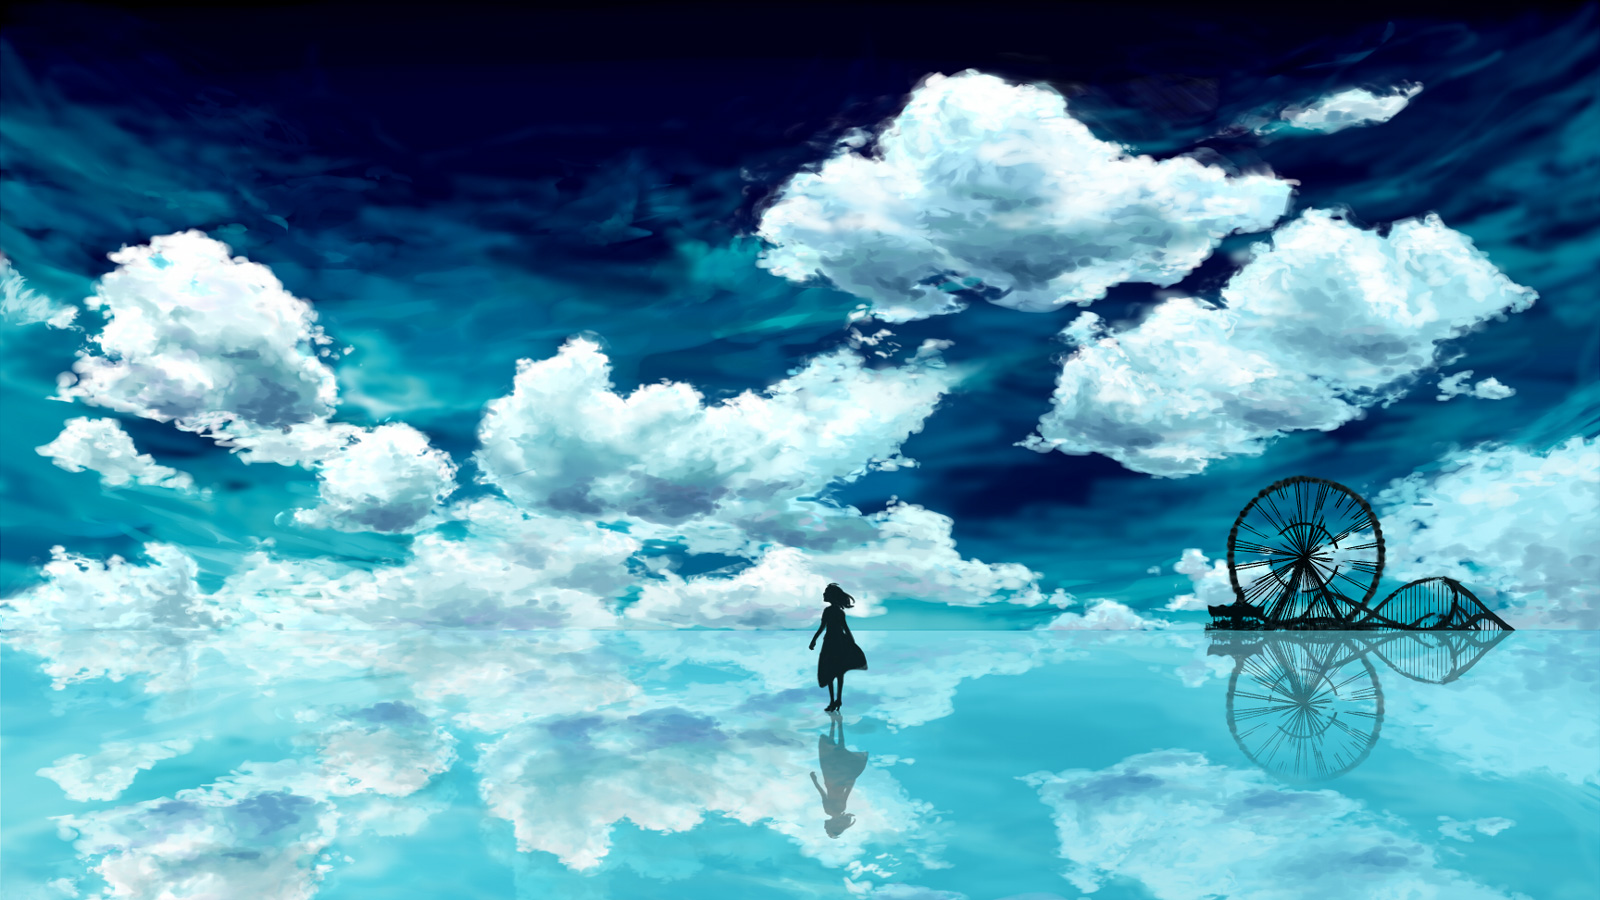 anime couple wallpaper hd website - wallpapersafari